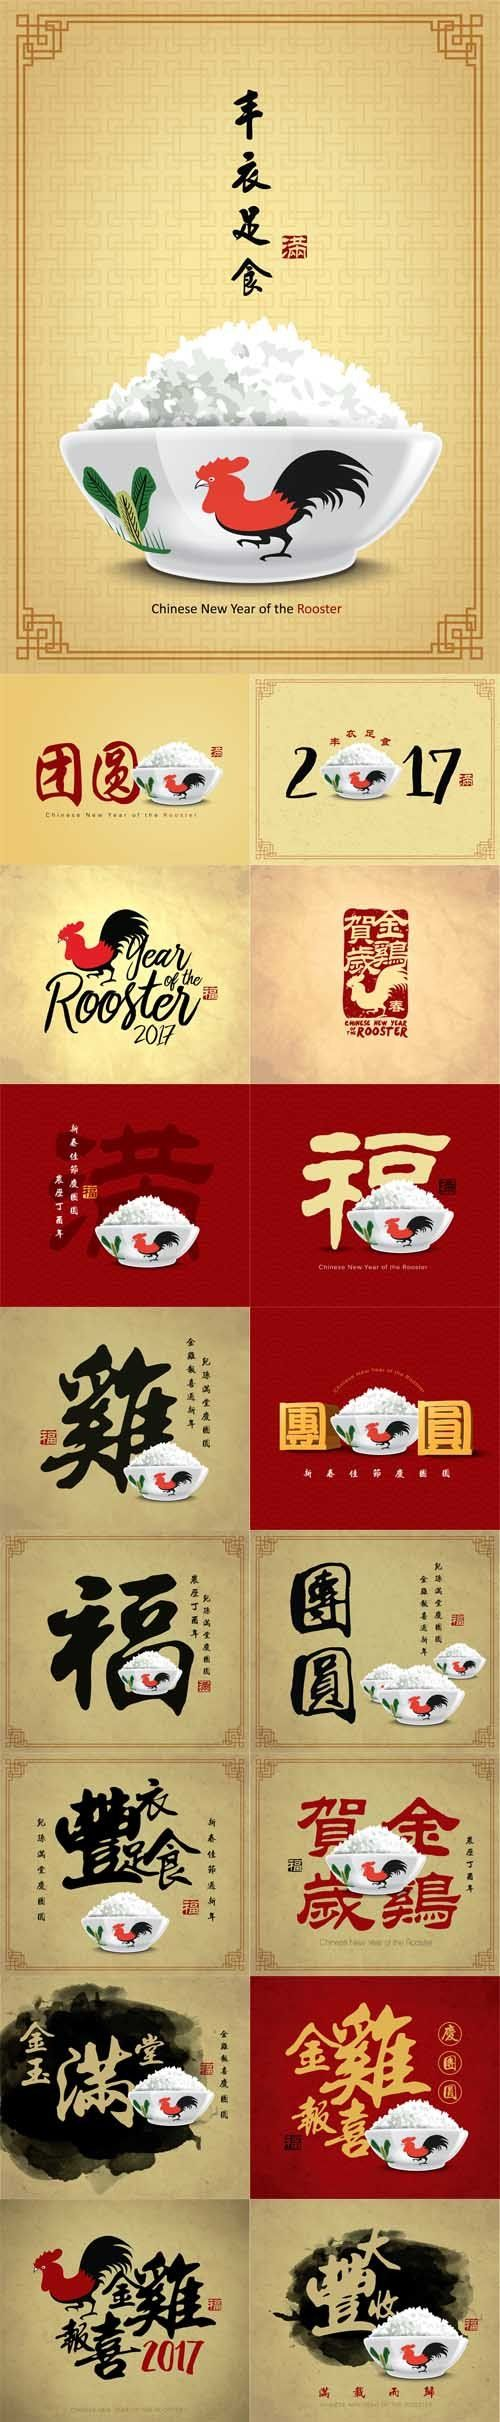 Vector Chinese New Year Card Design with Rooster Bowl 2017 Year